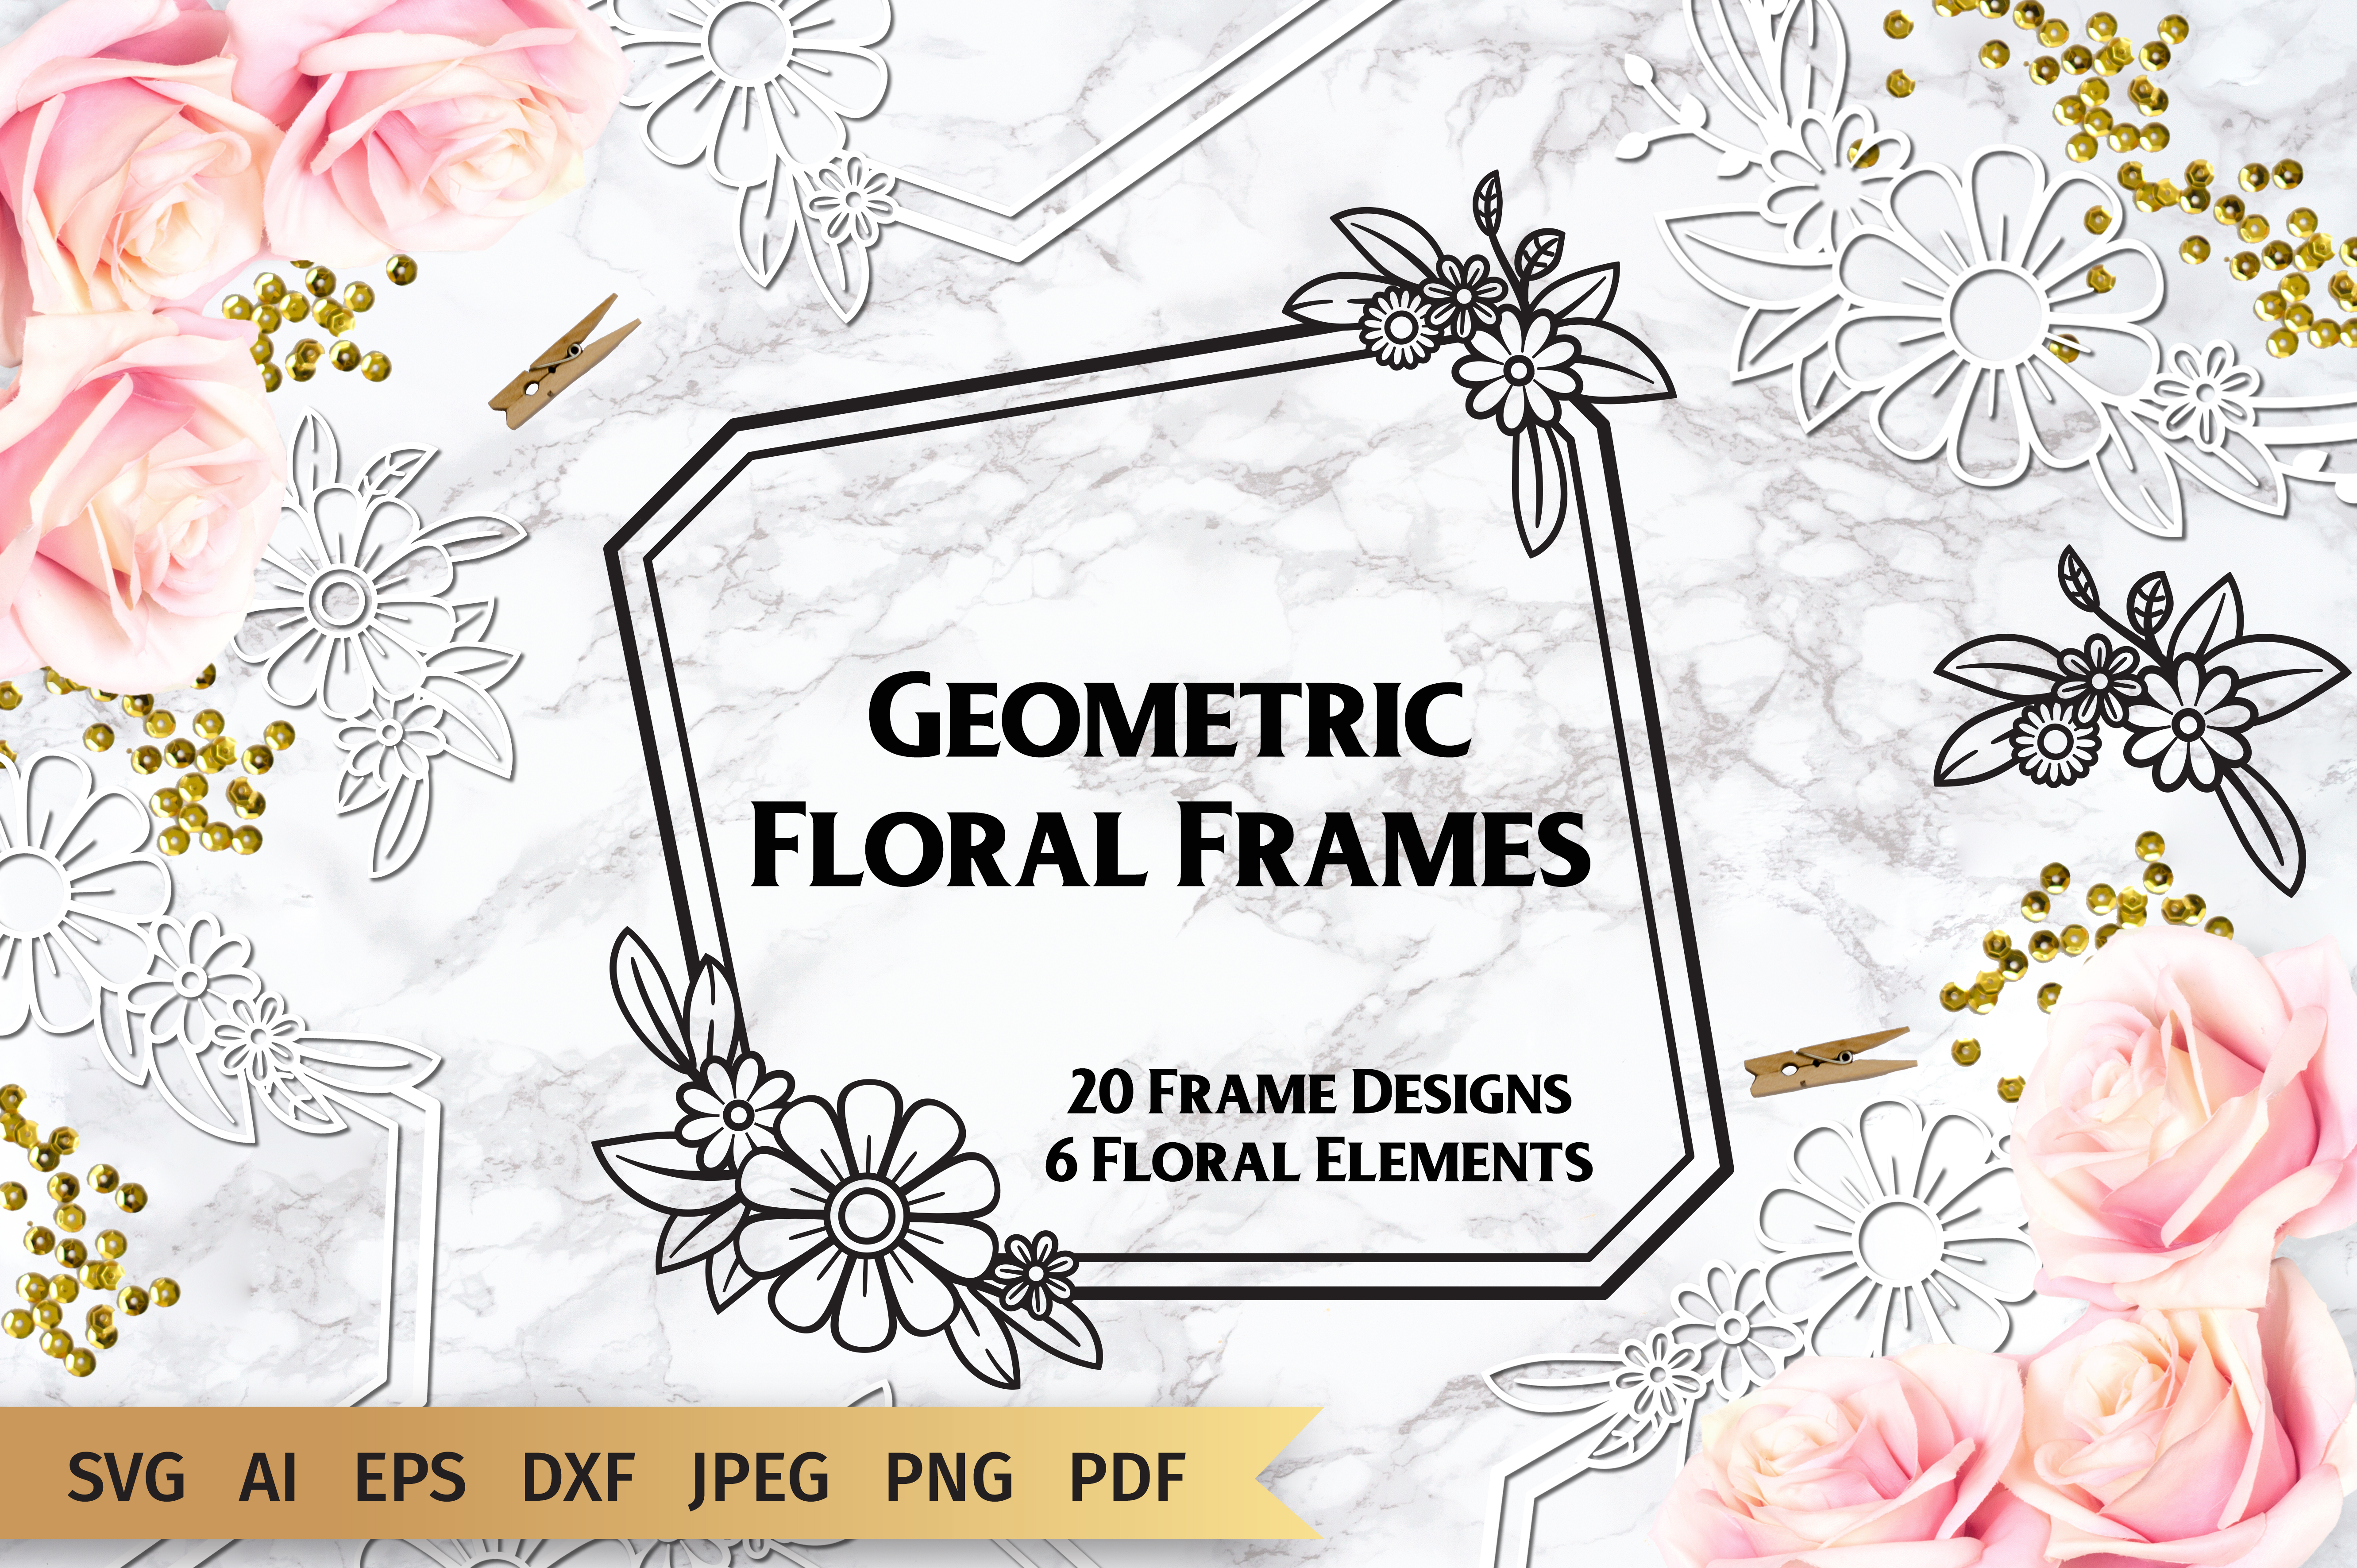 Geometric Floral Frames Graphic By Elinorka Creative Fabrica